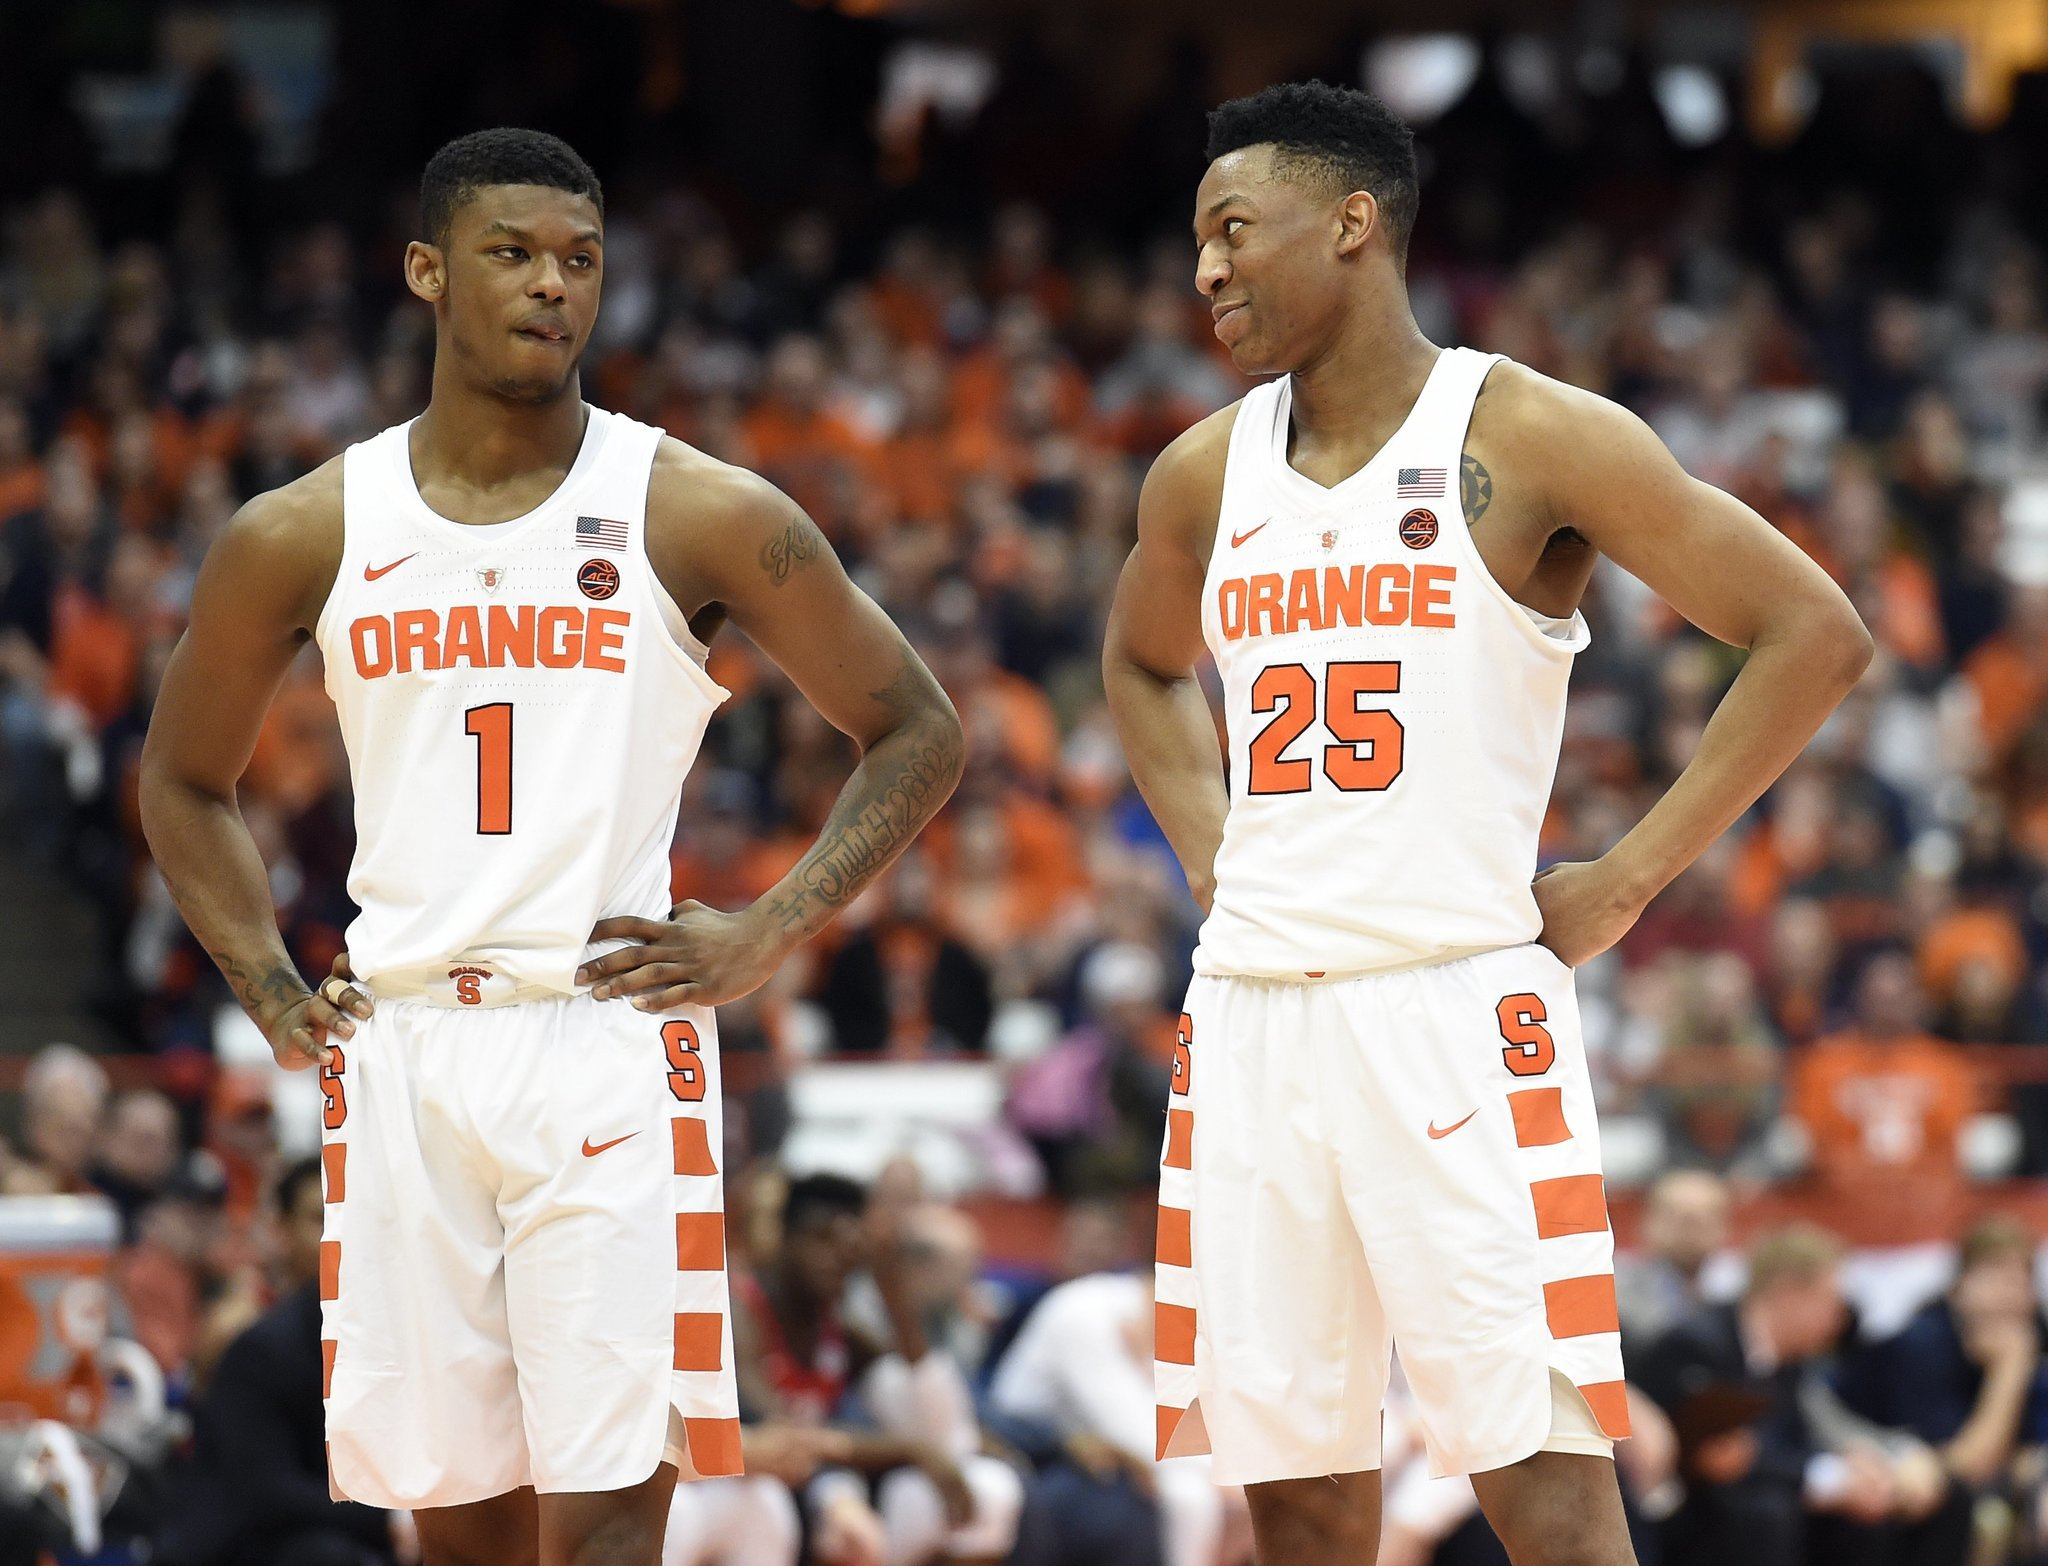 Syracuse Basketball Season Tickets Are Now On Sale For 2017 18